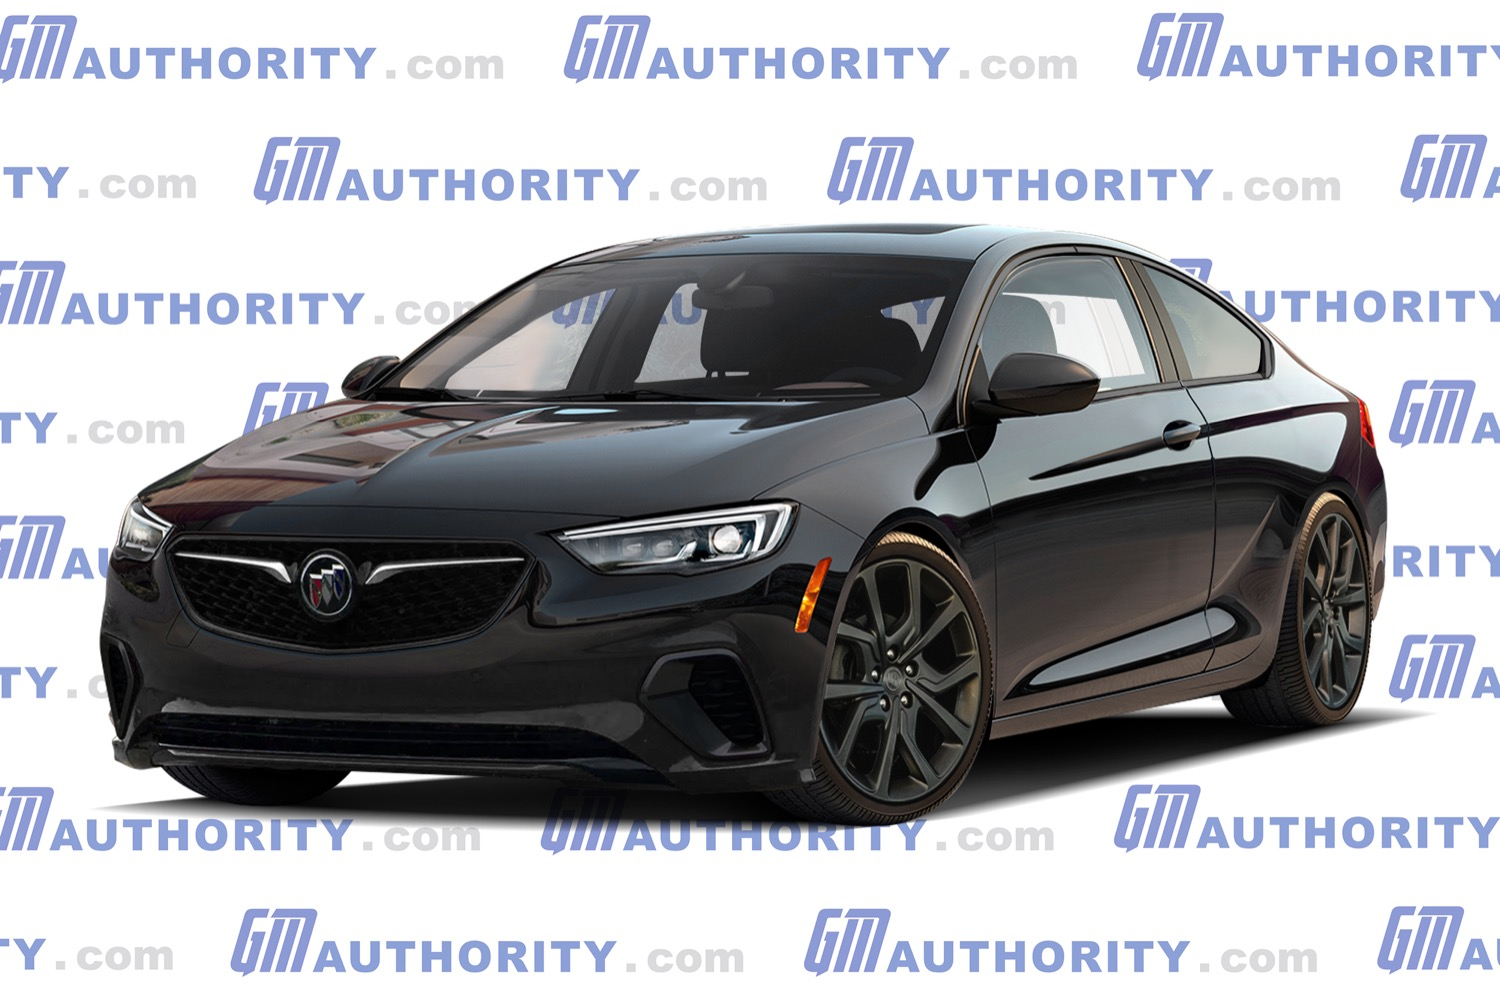 Modern Buick Regal Gnx Rendered | Gm Authority New 2022 Buick Riviera Specs, Diesel, Lights